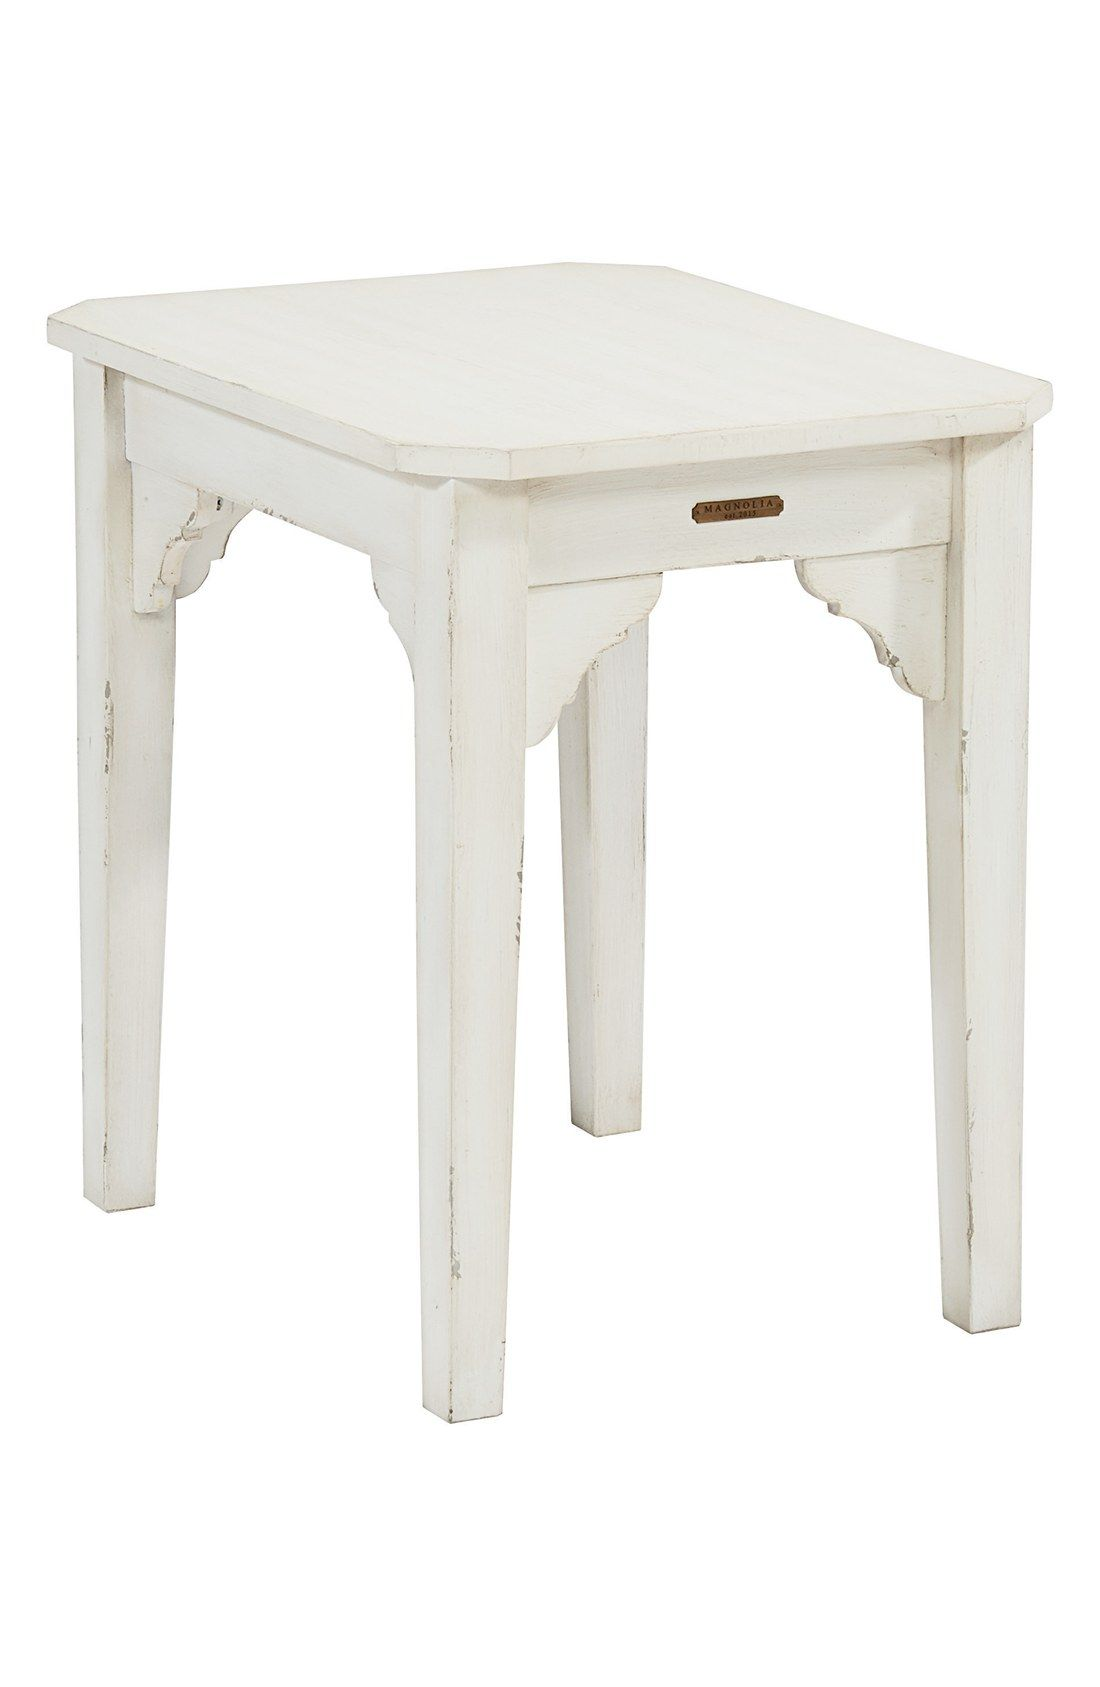 Free Shipping And Returns On Magnolia Home Farmhouse End Table At Nordstrom.com.  A